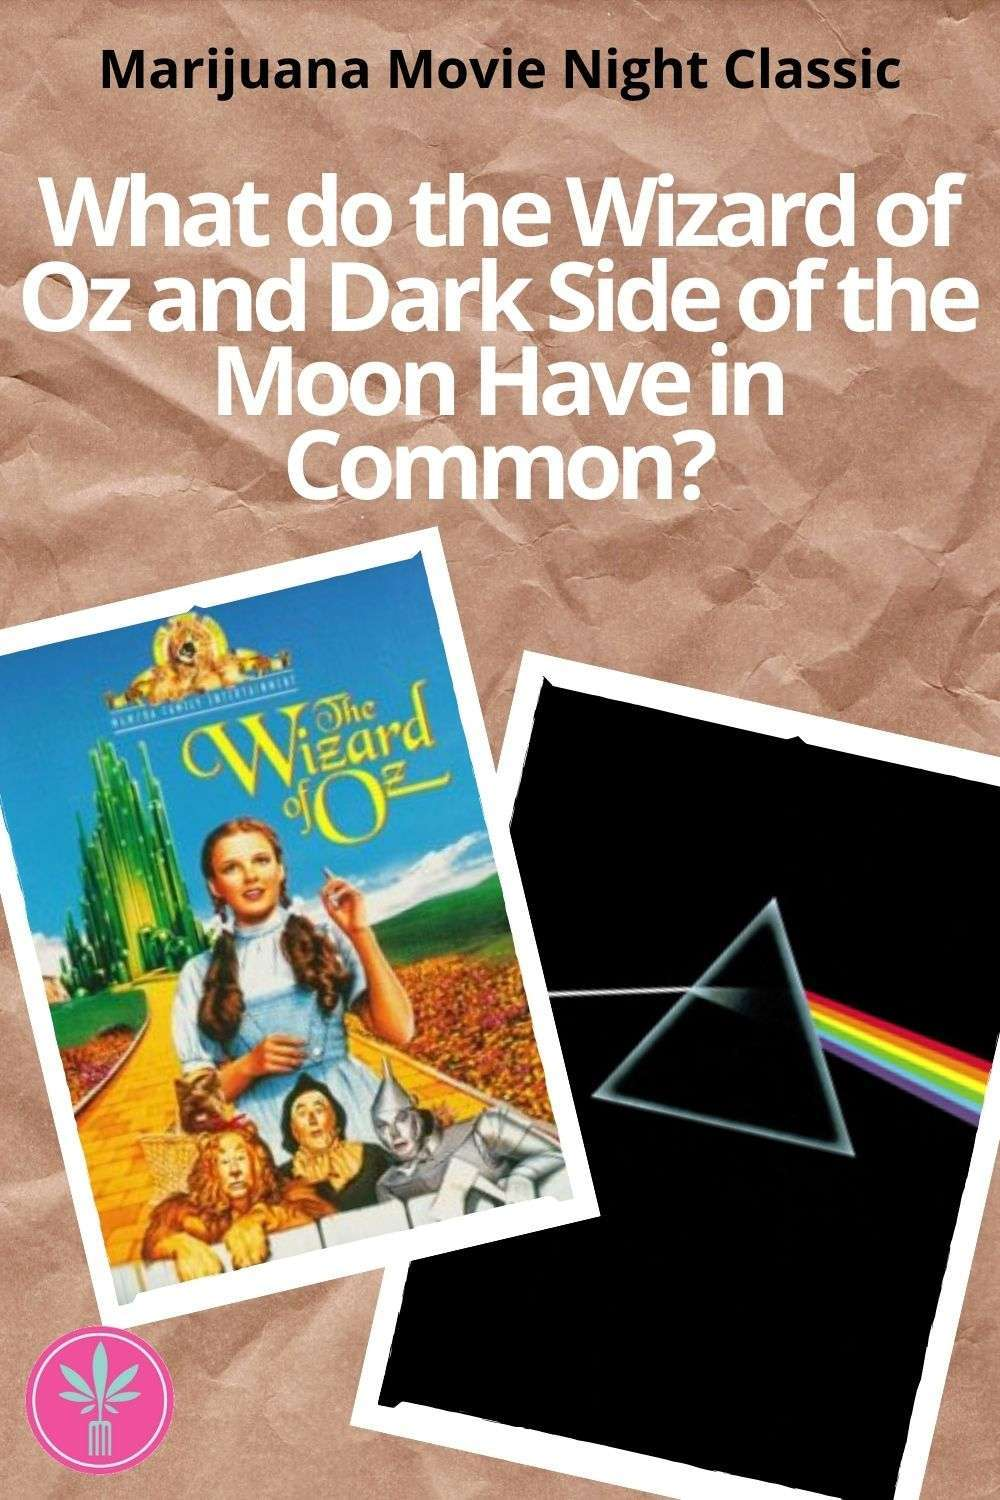 Dark side of the moon album cover, Wizard of Oz video cover